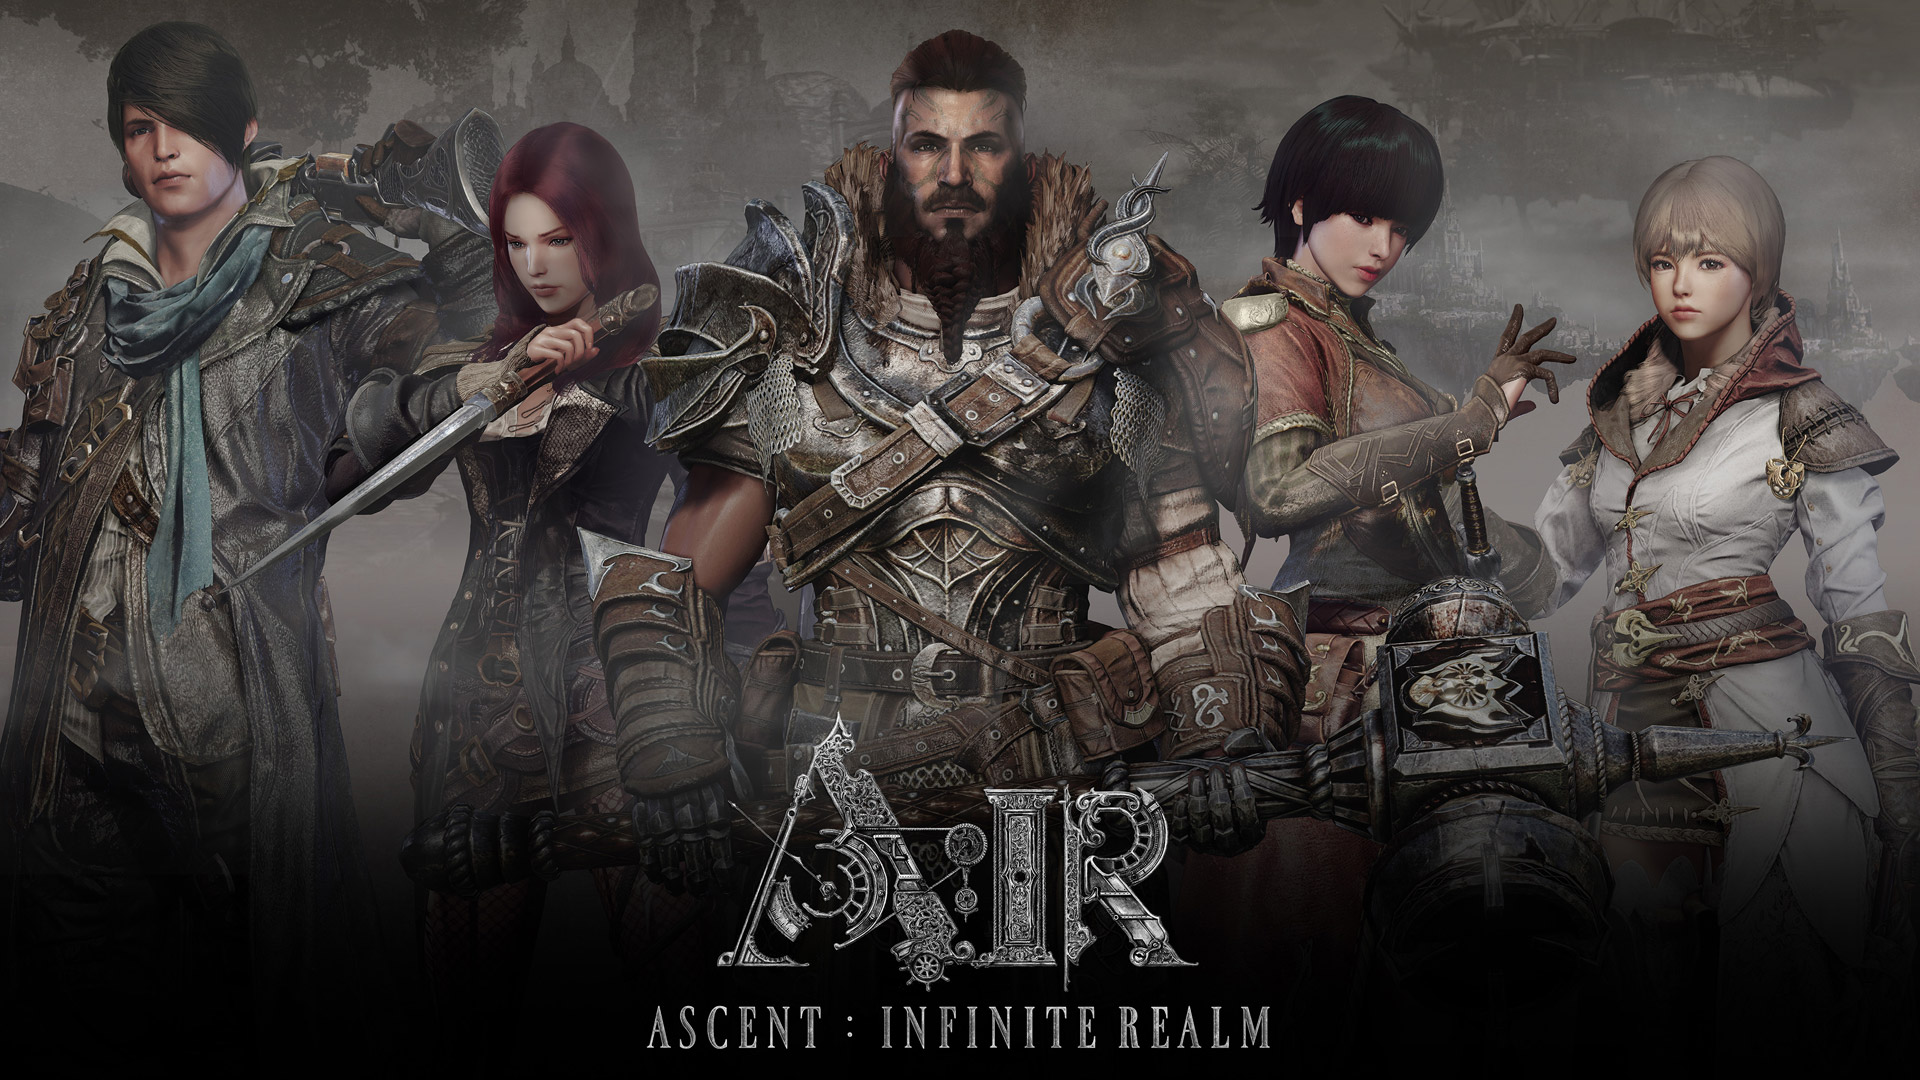 Free Ascent: Infinite Realm Wallpaper in 1920x1080